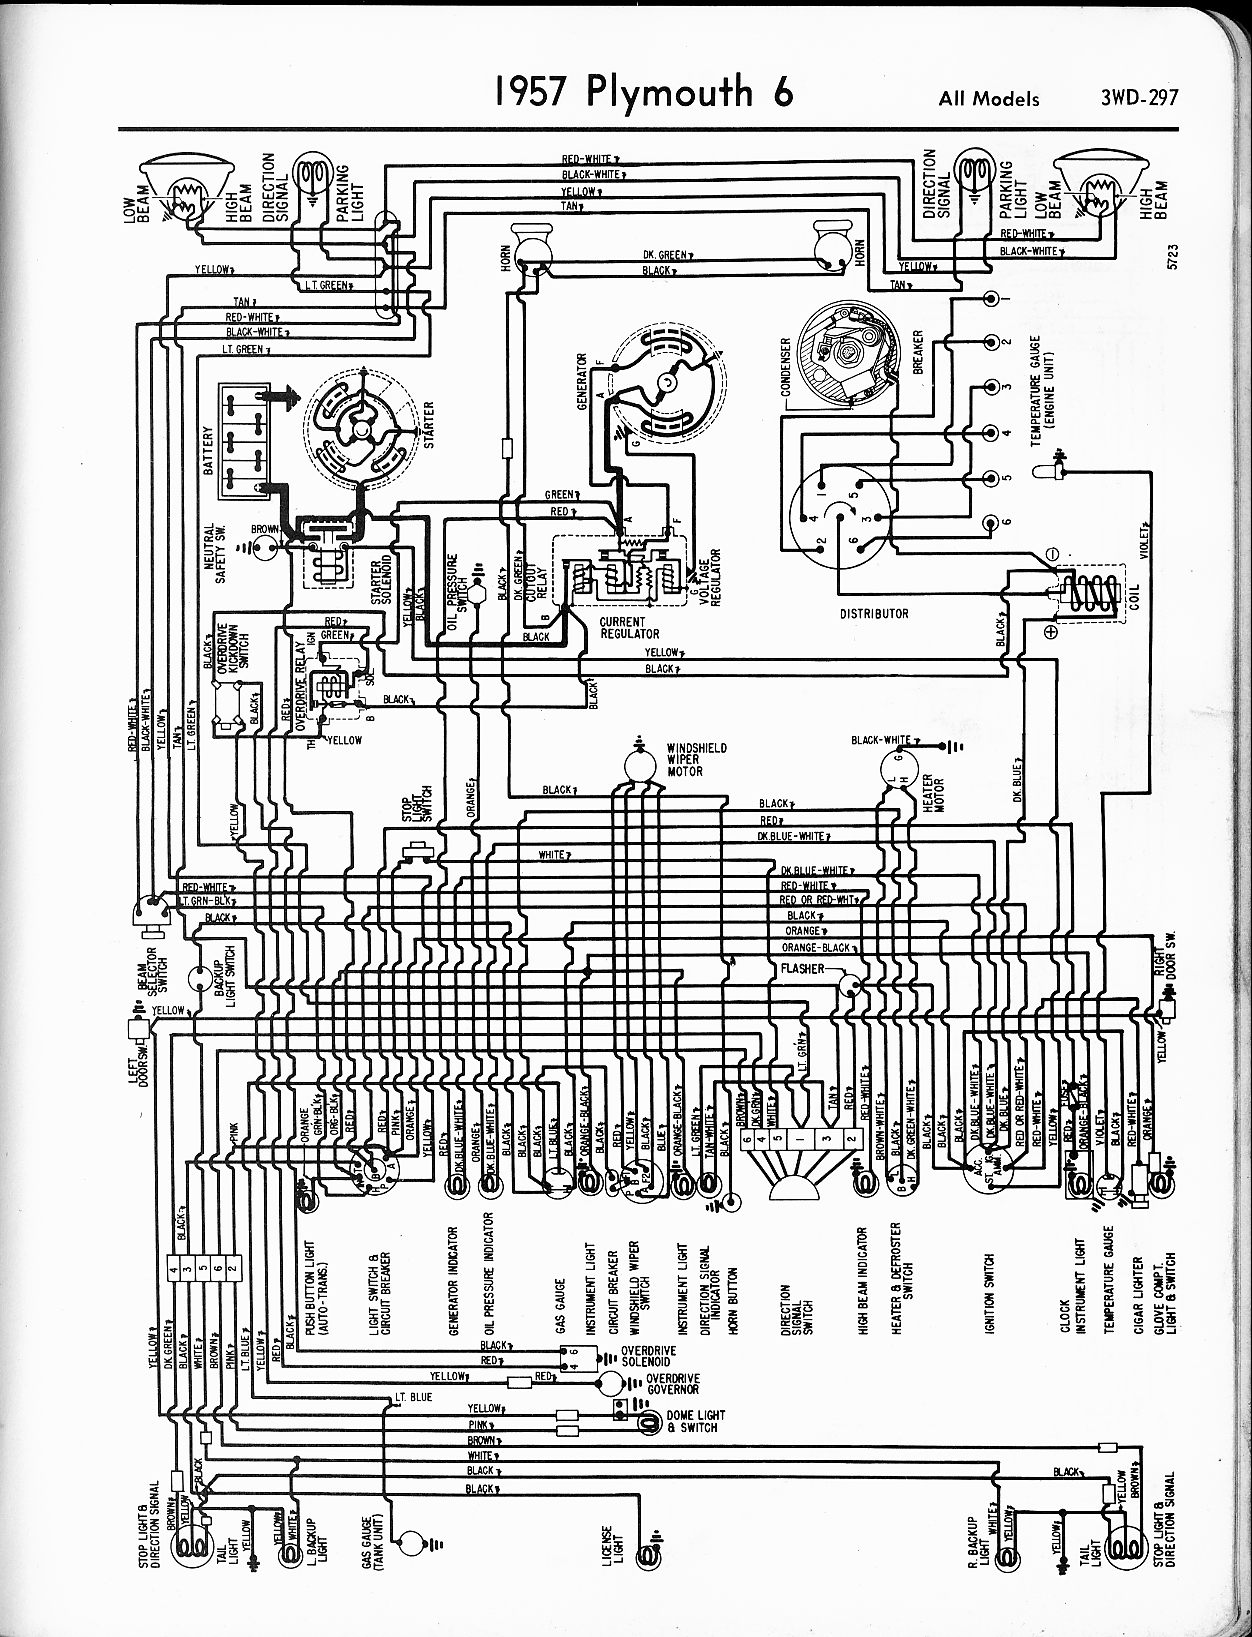 Plymouth Fuse Box Diagram Wiring And Ebooks For 2001 Neon 1964 You Rh 10 15 3 Carrera Rennwelt De 1999 Breeze 1997 Voyager